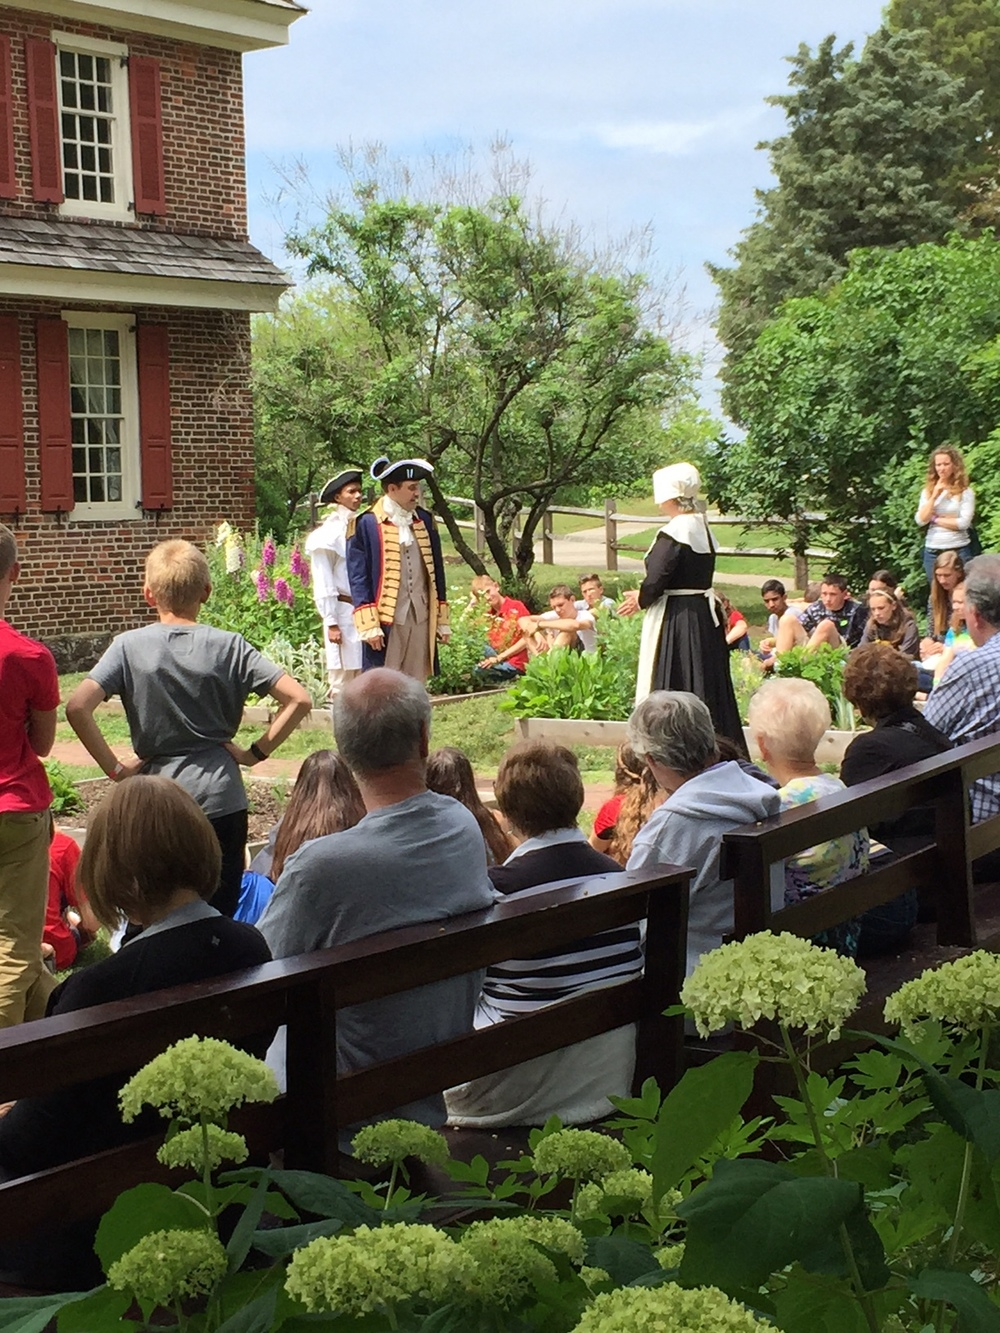 Actors performing in the herb garden behind the James & Ann Whitall House, National Park, NJ.